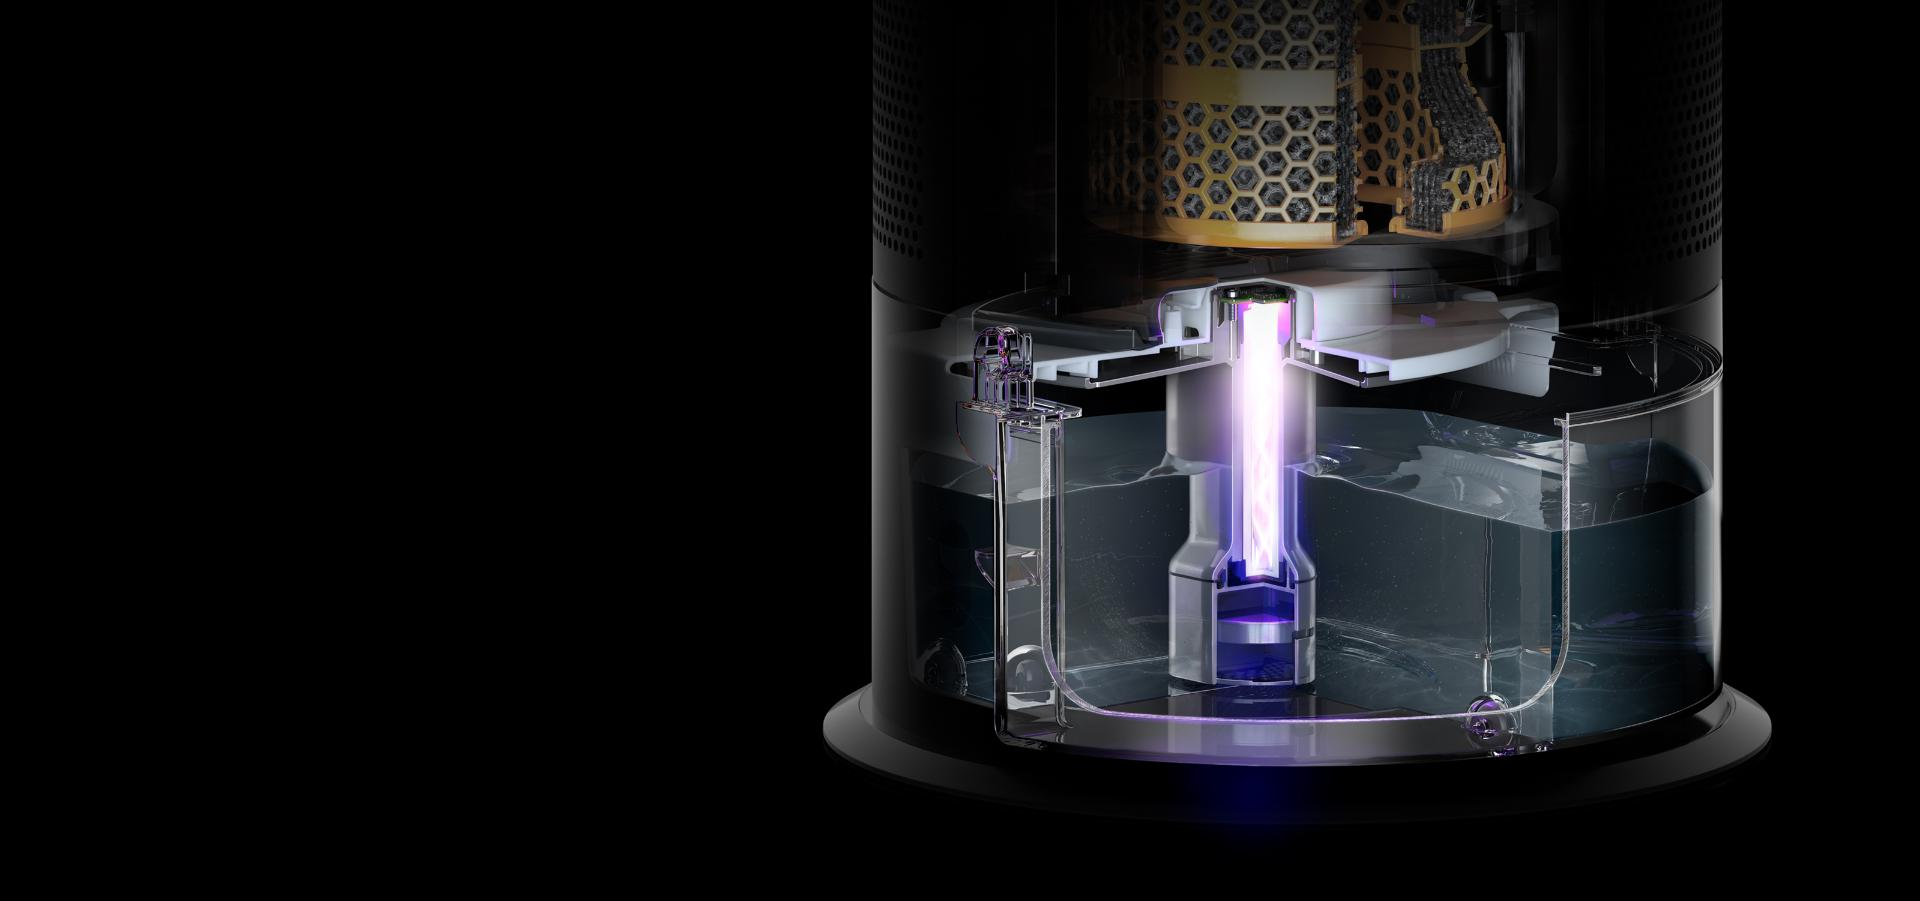 Inside the Dyson purifier humidifier's water tank, where a bright ultraviolet beam lights up the water